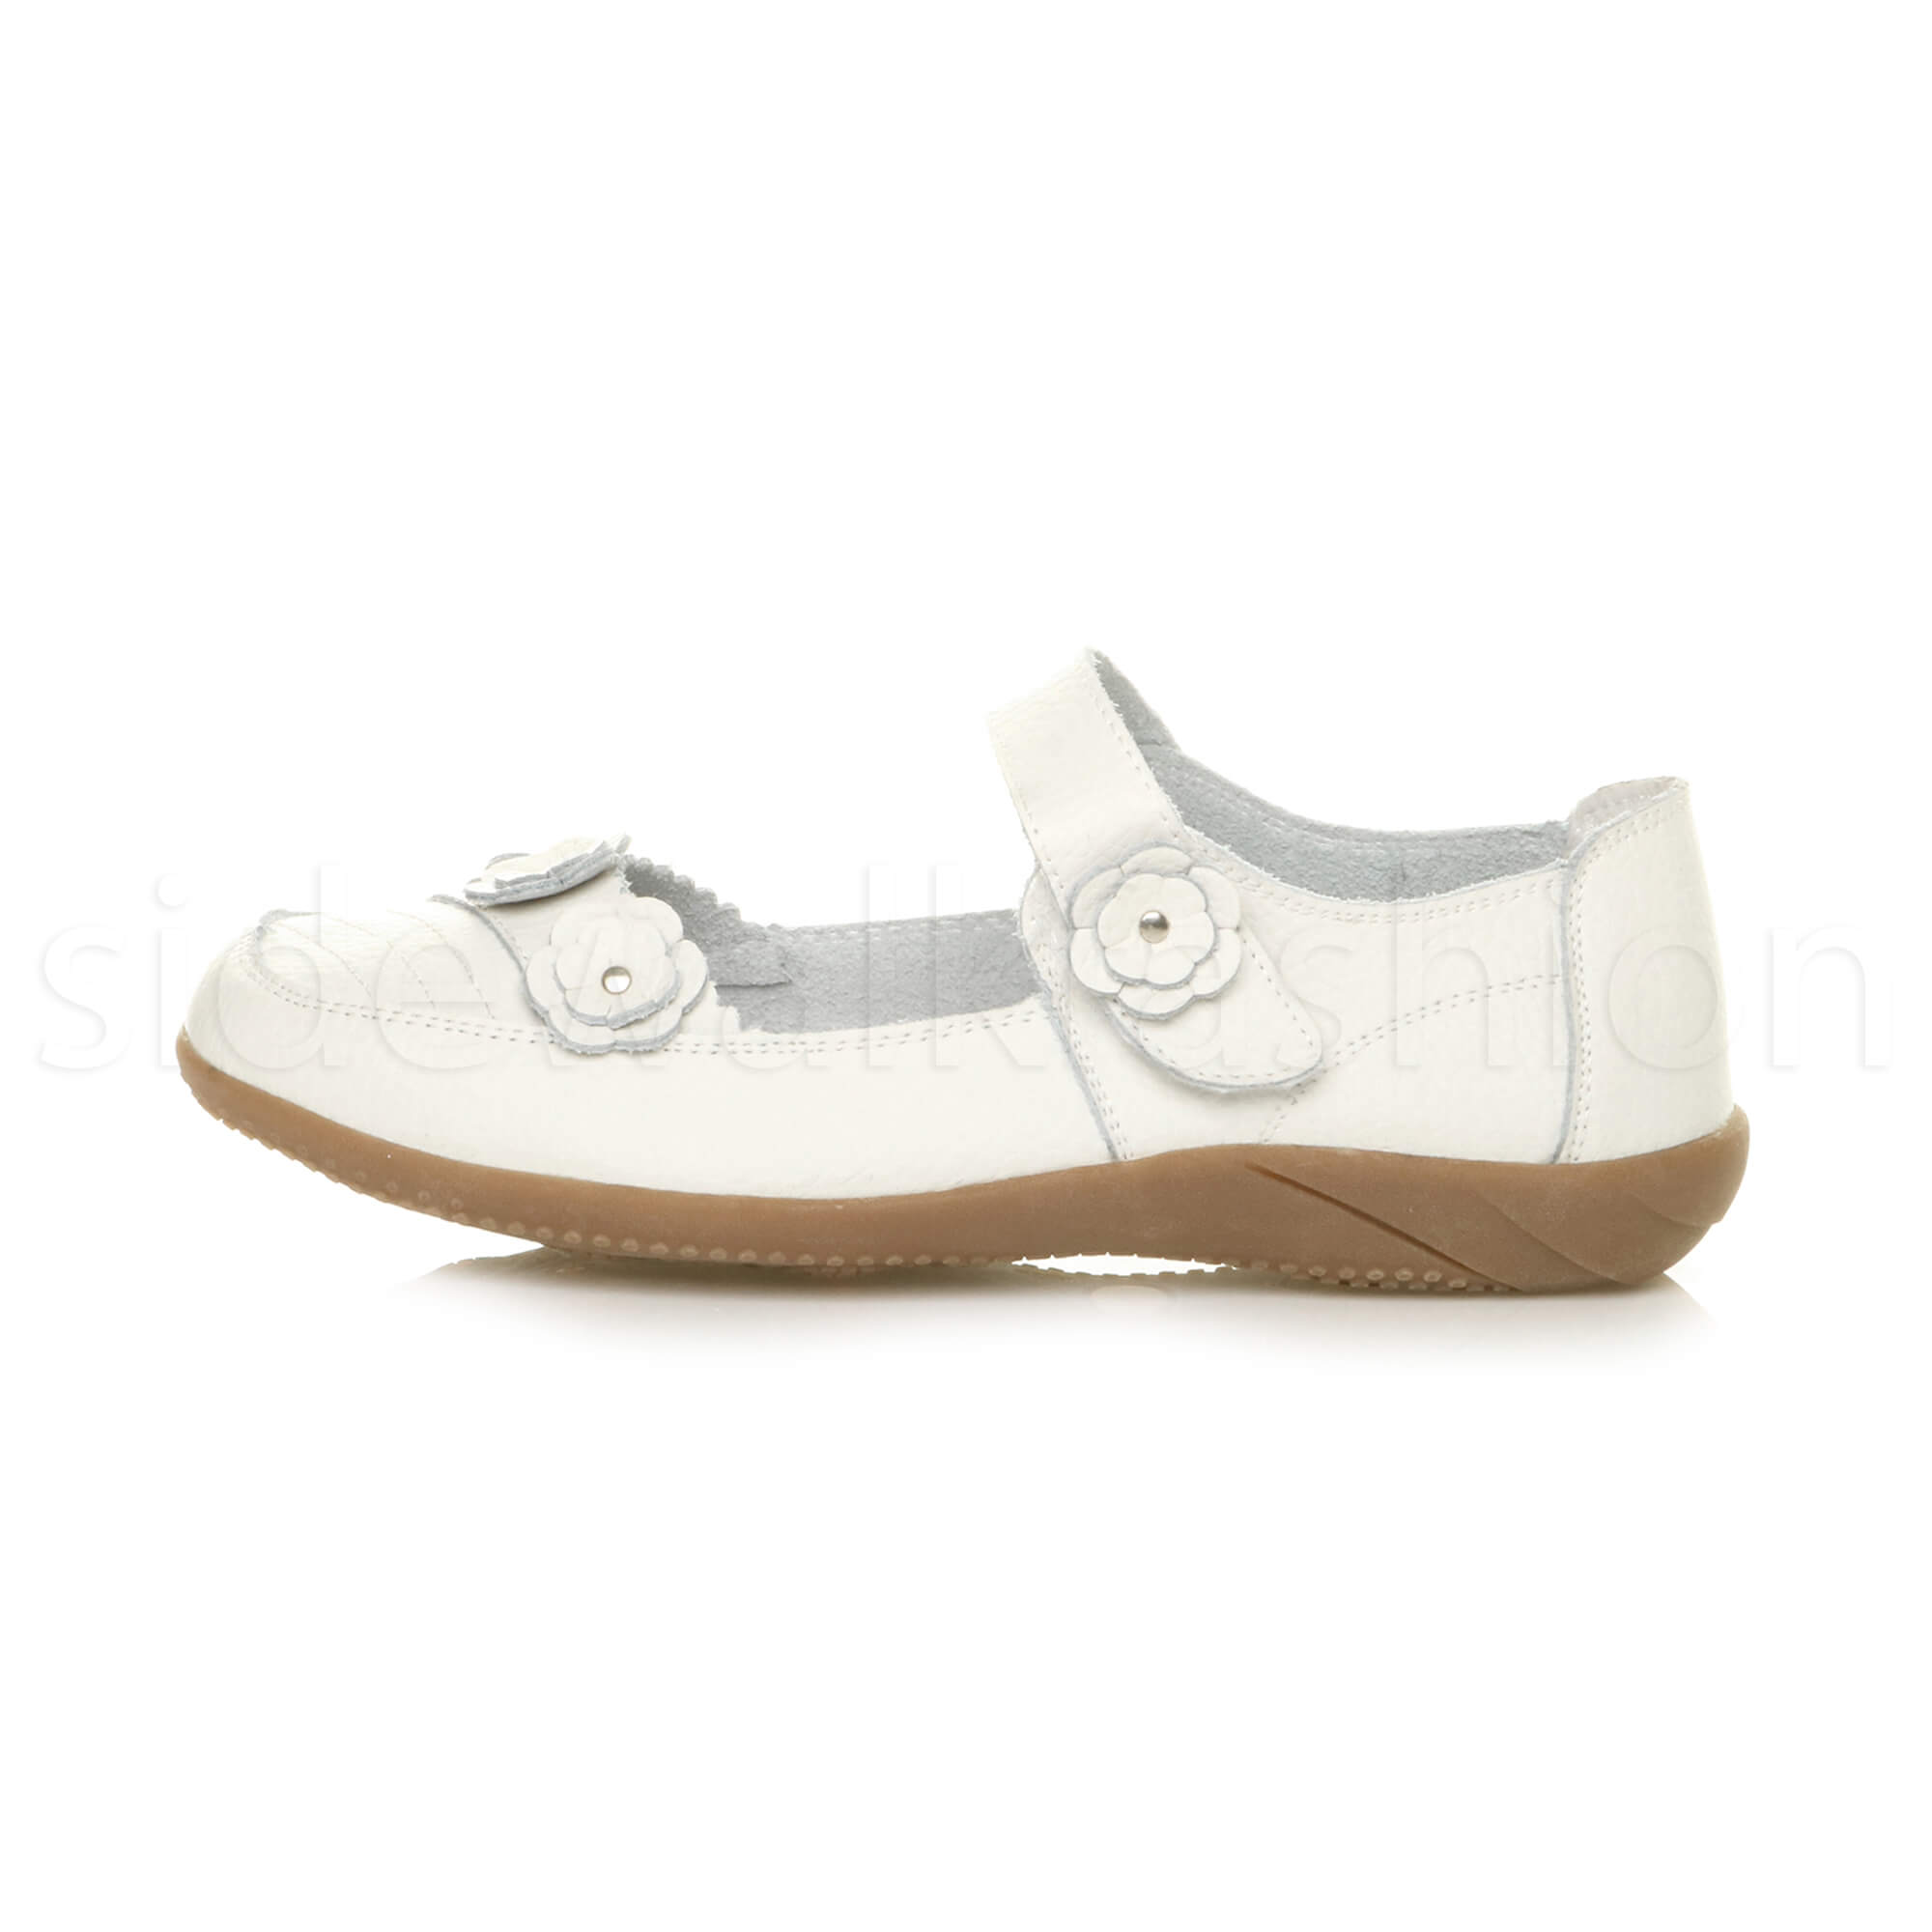 Womens-ladies-leather-comfort-walking-casual-sandals-mary-jane-strap-shoes-size thumbnail 53